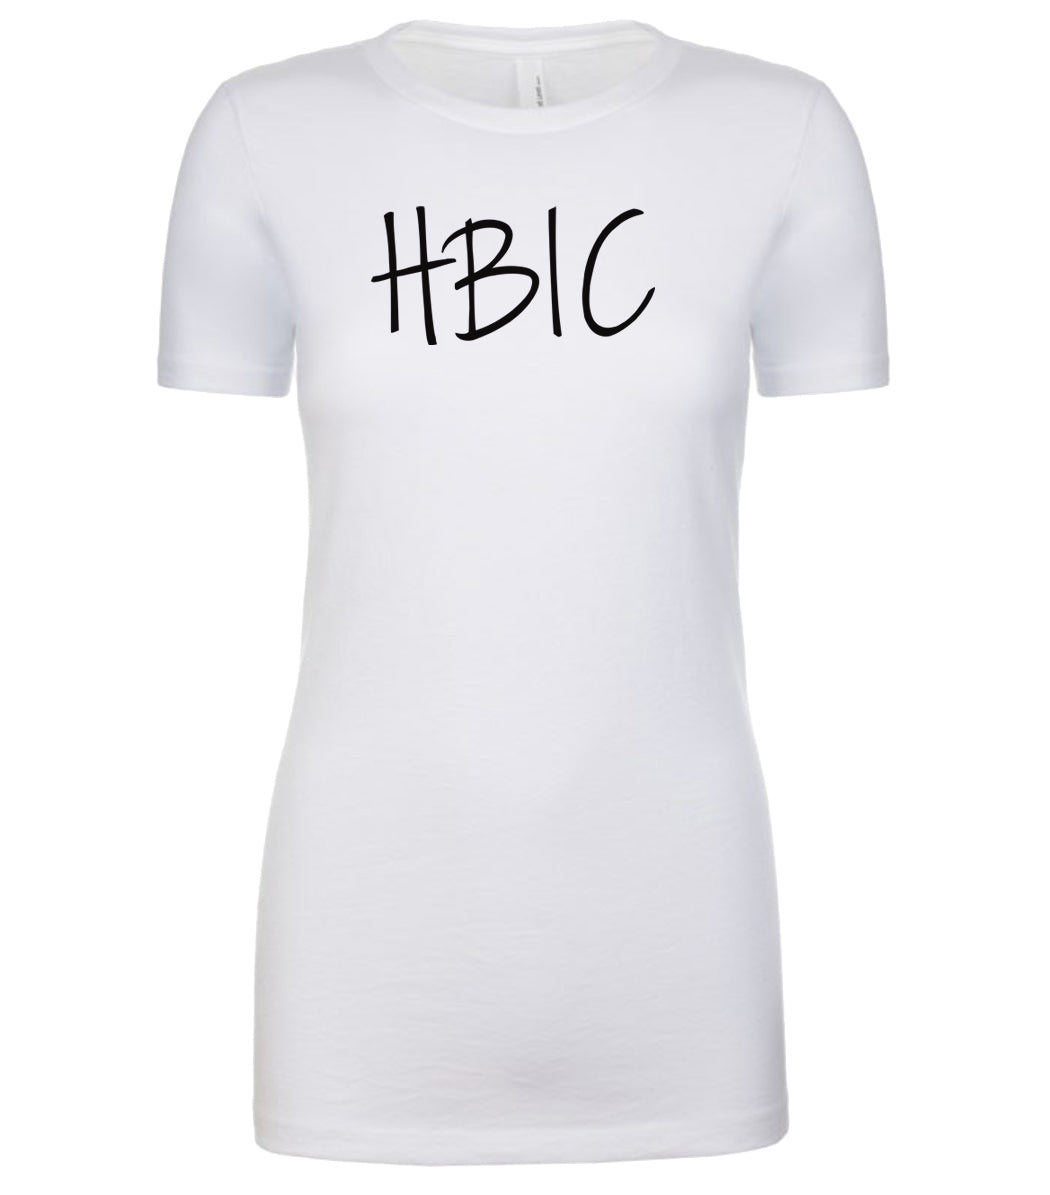 white hbic womens crewneck t shirt